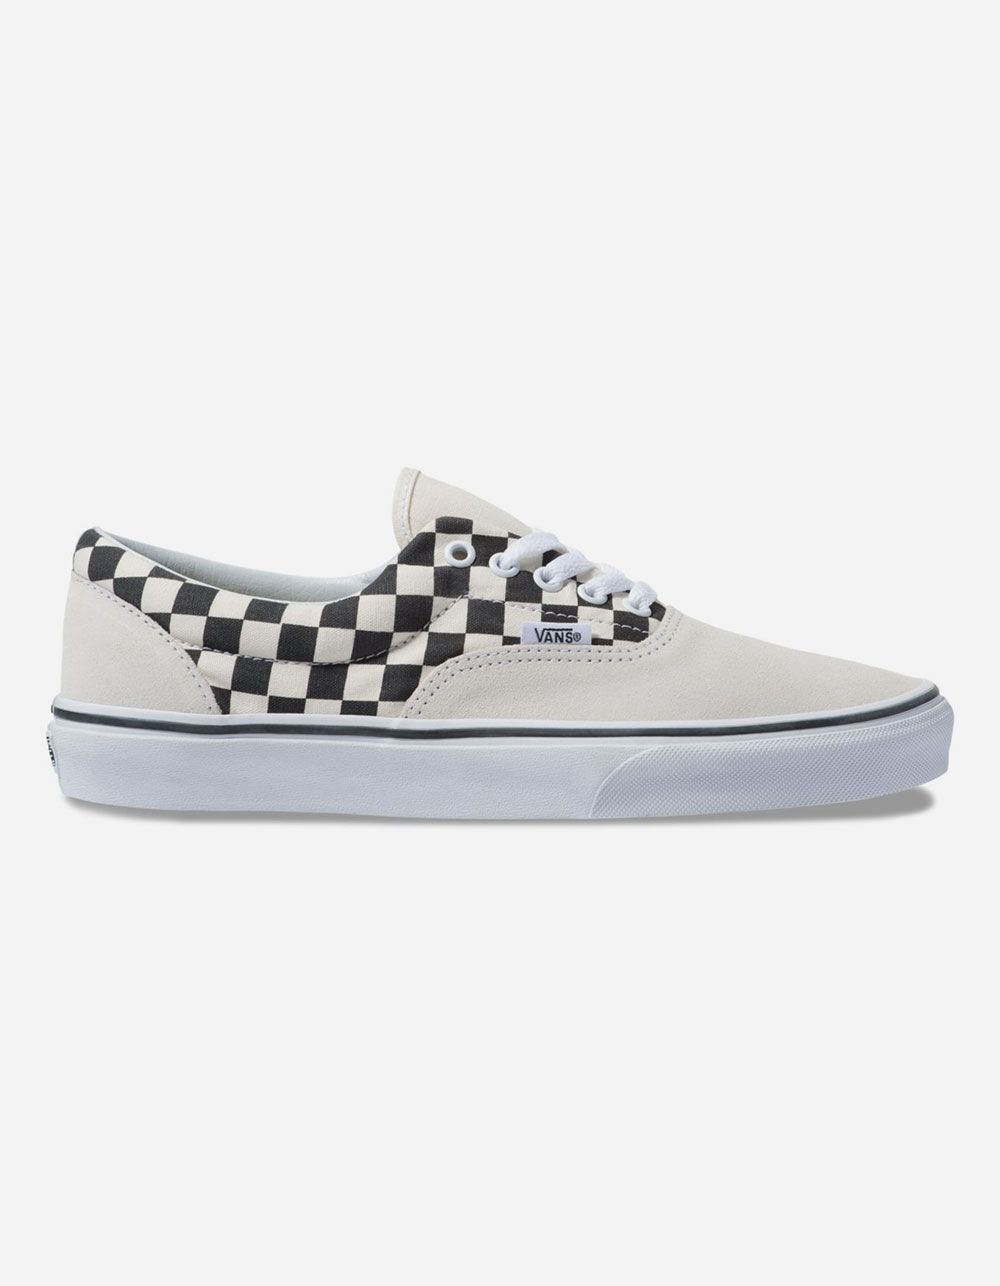 VANS PRIMARY CHECK ERA MARSHMALLOW & BLACK SHOES